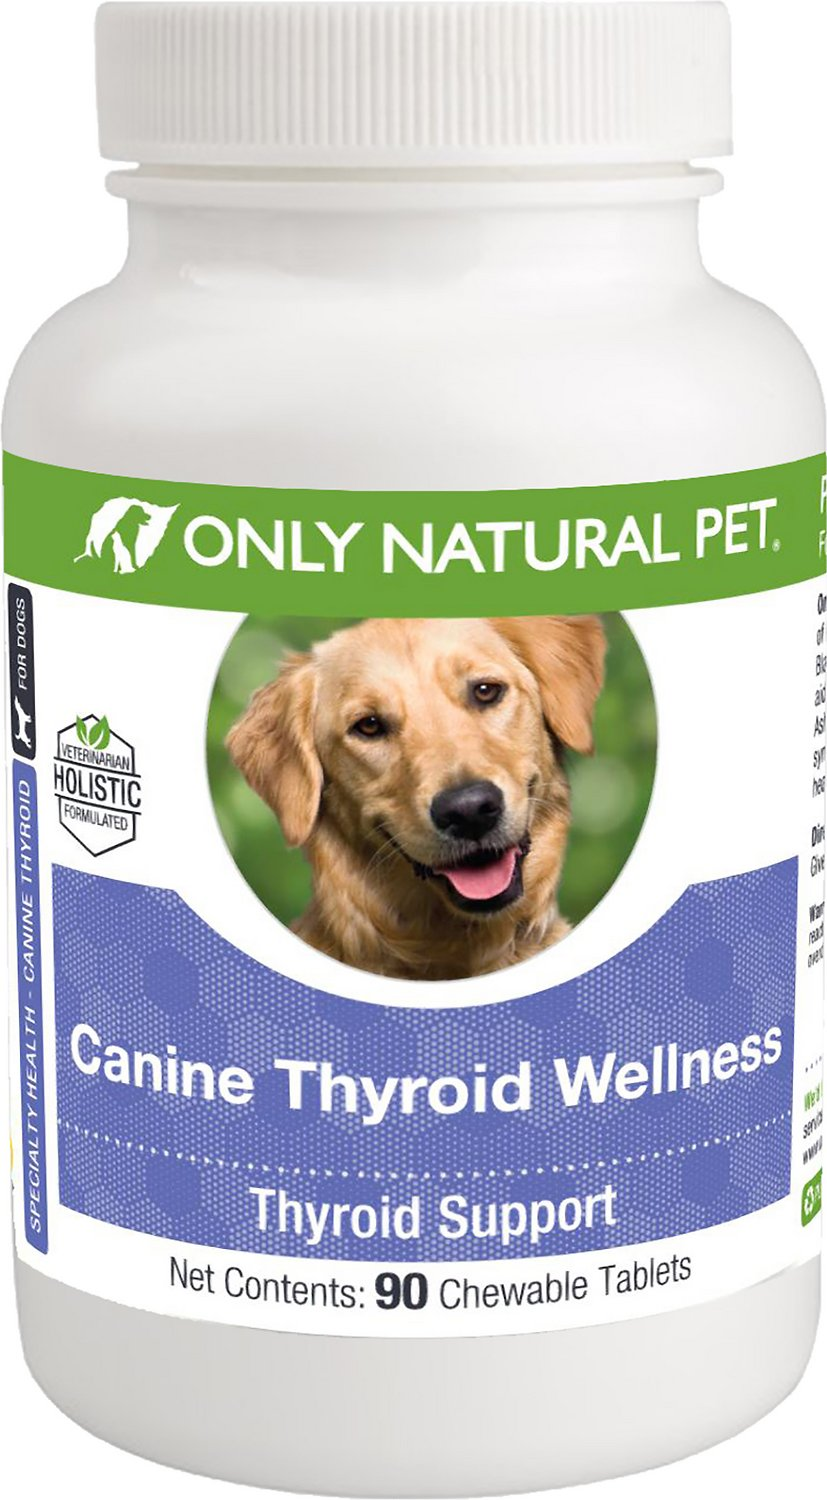 Only Natural Pet Canine Thyroid Wellness Chewable Tablets Dog